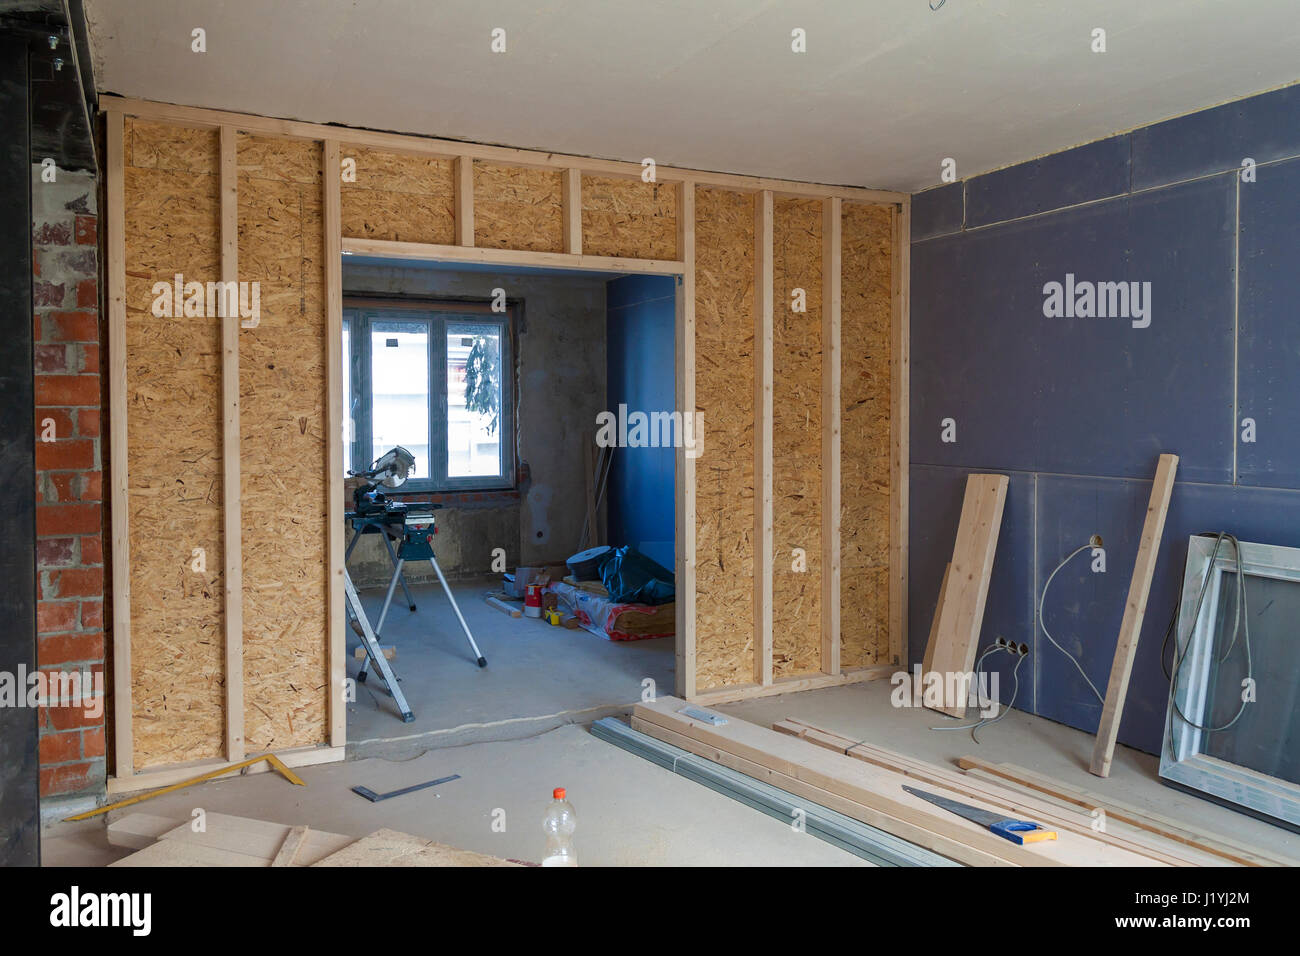 Interior of a house under construction renovation of an apartment stock photo royalty free - Renovating an apartment ...